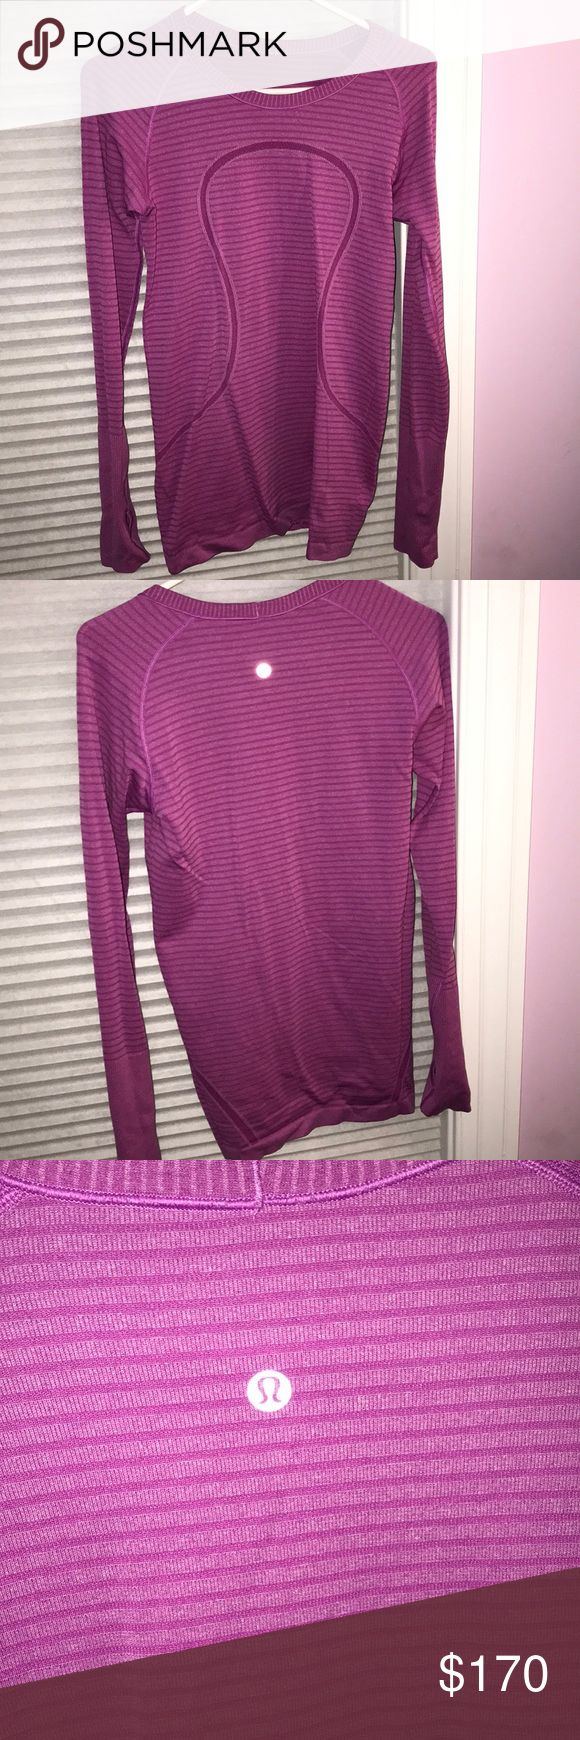 RARE PURPLE LULULEMON TOO Beautiful purple lululemon top! VERY RARE AND COLORS AND STYLES LIKE THIS ARENT SOLD ANYMORE! Super rare and great design! WORN ONCE! Practically in new condition! Does not have small white tag since I find them annoying but this is a size 10 in Lululemon tops and will fit a medium/regular- large woman RARE MESSAGE INSCRIBED! lululemon athletica Tops Tees - Long Sleeve